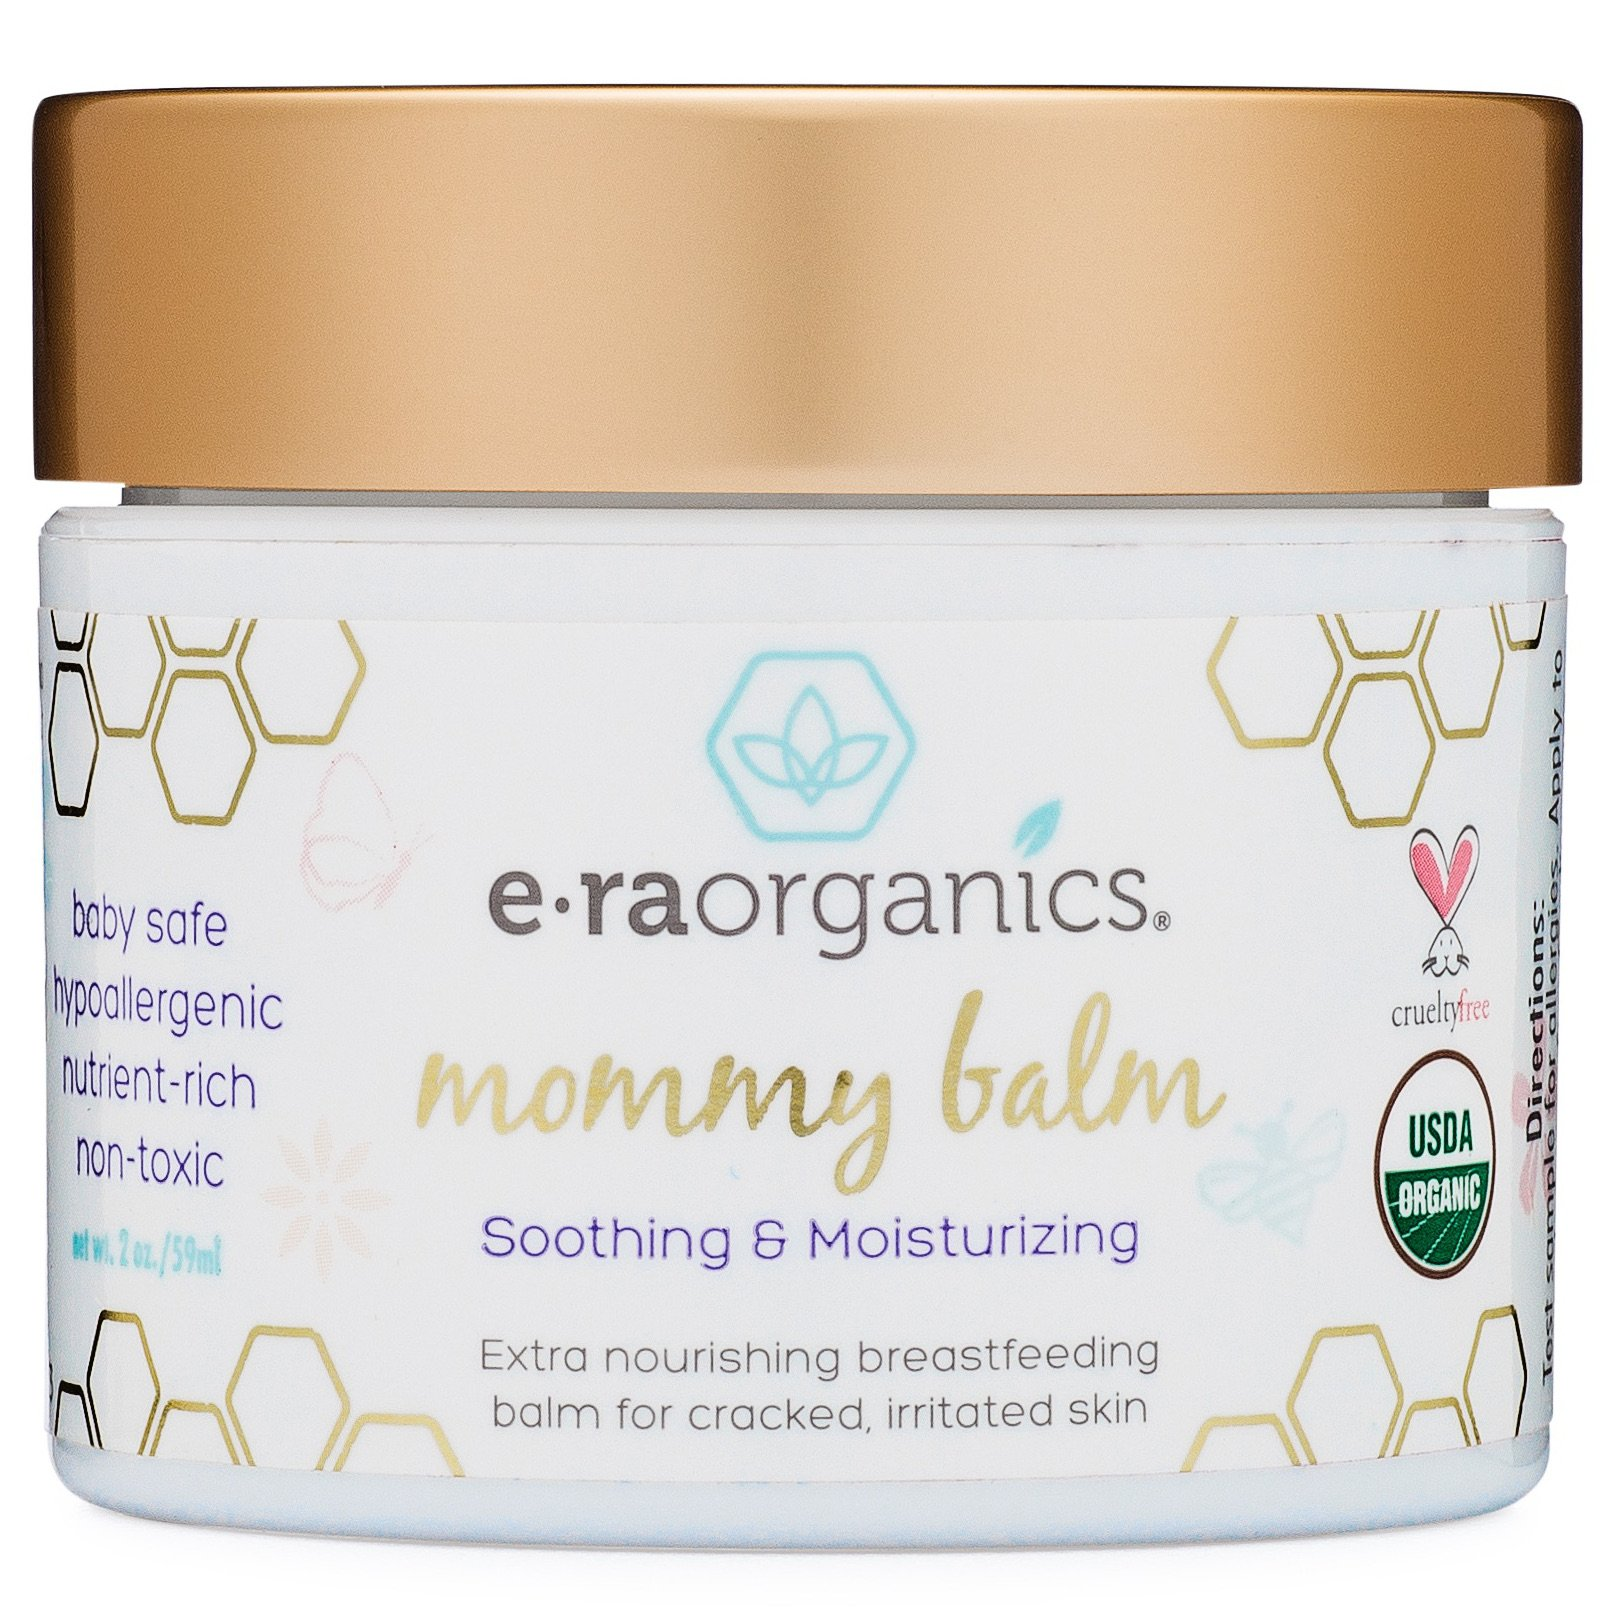 Soothing Nipple Cream for Breastfeeding Moms 100% Natural, USDA Certified Organic Healing Balm for Chapped, Irritated, Sensitive Skin Care. Non-GMO, Baby Safe Breastfeeding Cream Era-Organics by Era Organics